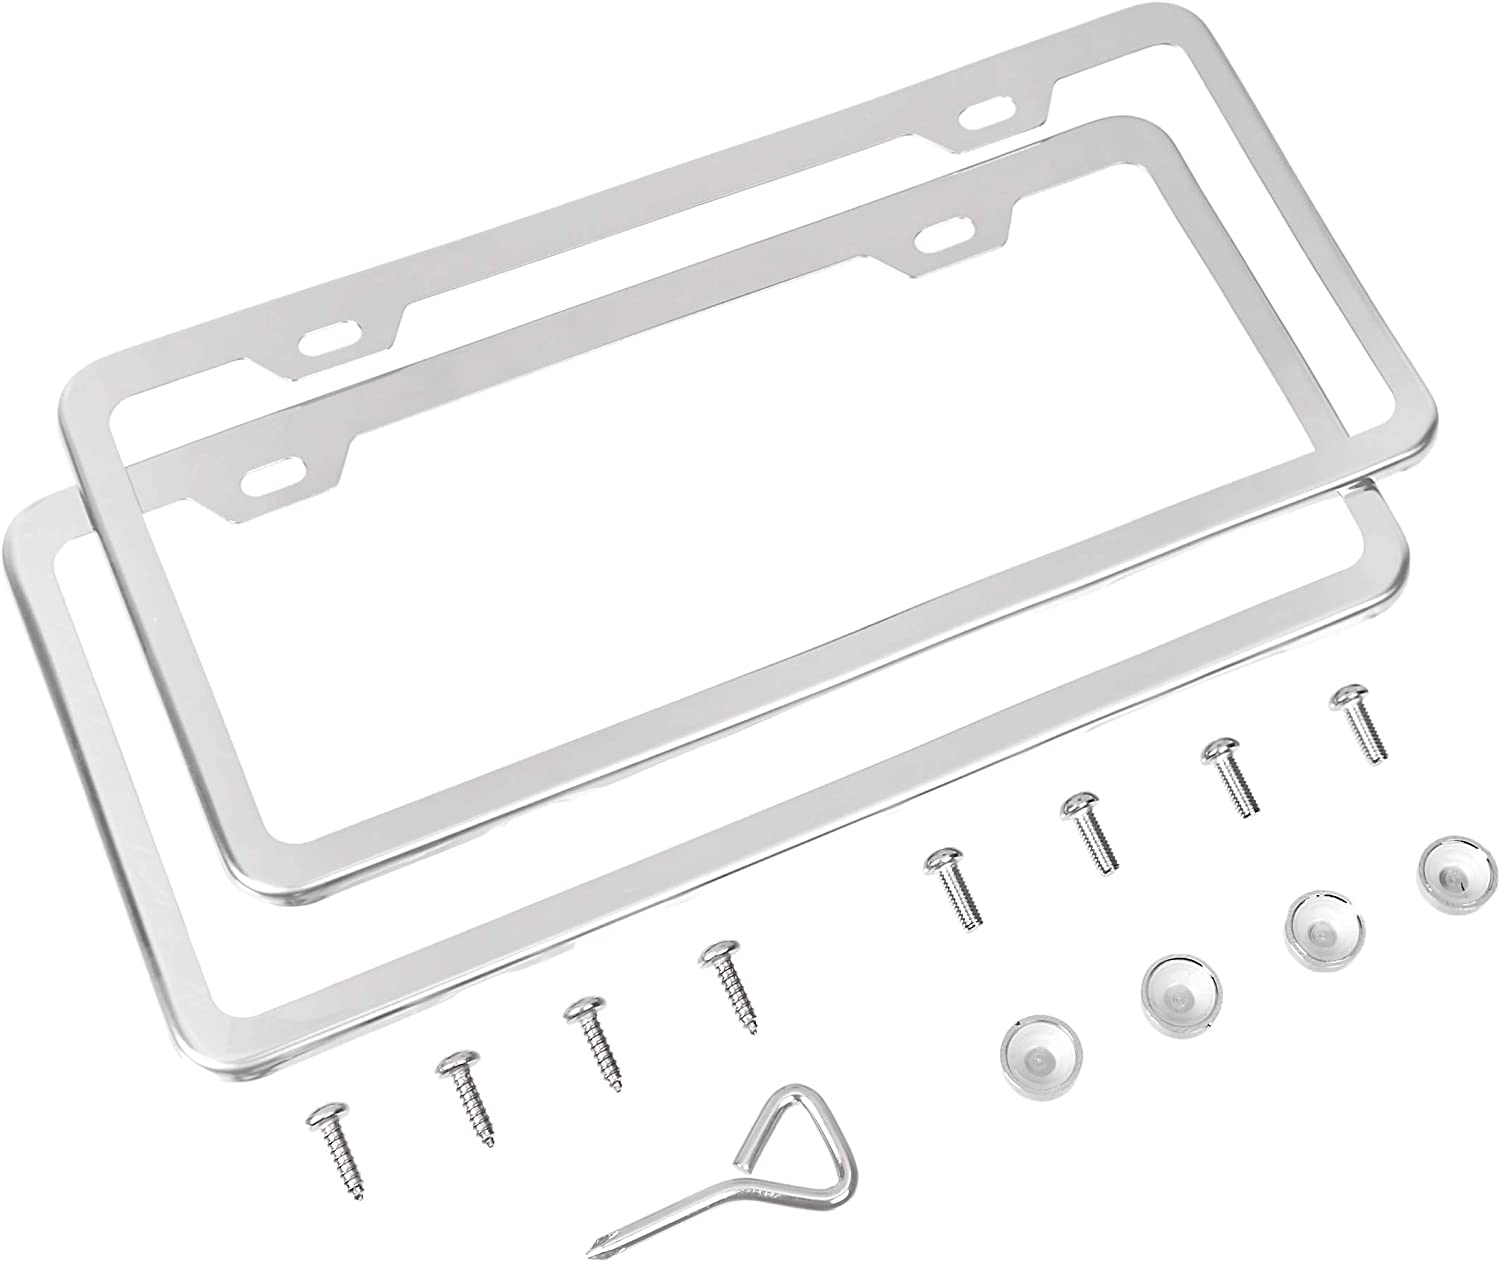 12.2 x 6.3 Silver 2-Hole Basics Stainless Steel License Plate Frame Pair with Screw Caps